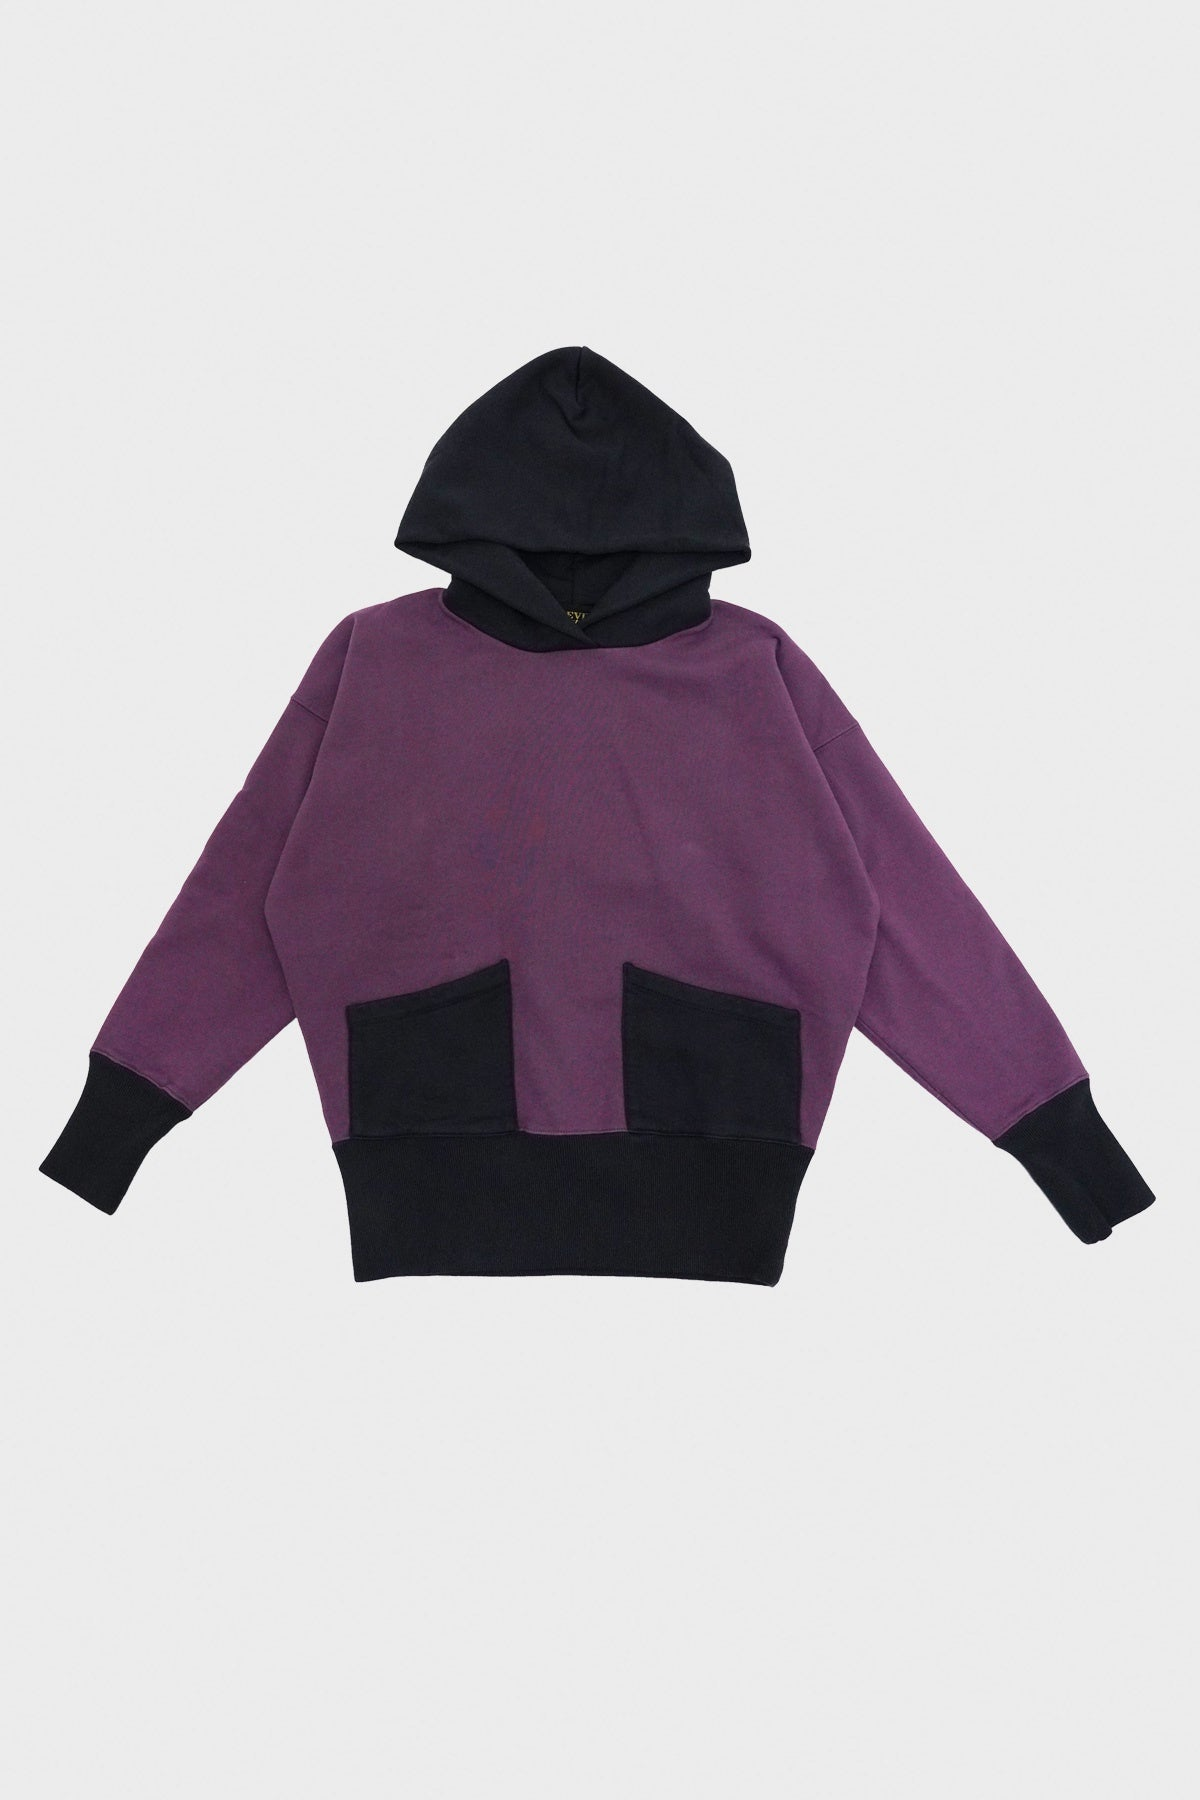 Levi's Vintage Clothing - 1950's Hoodie - Purple Black - Canoe Club